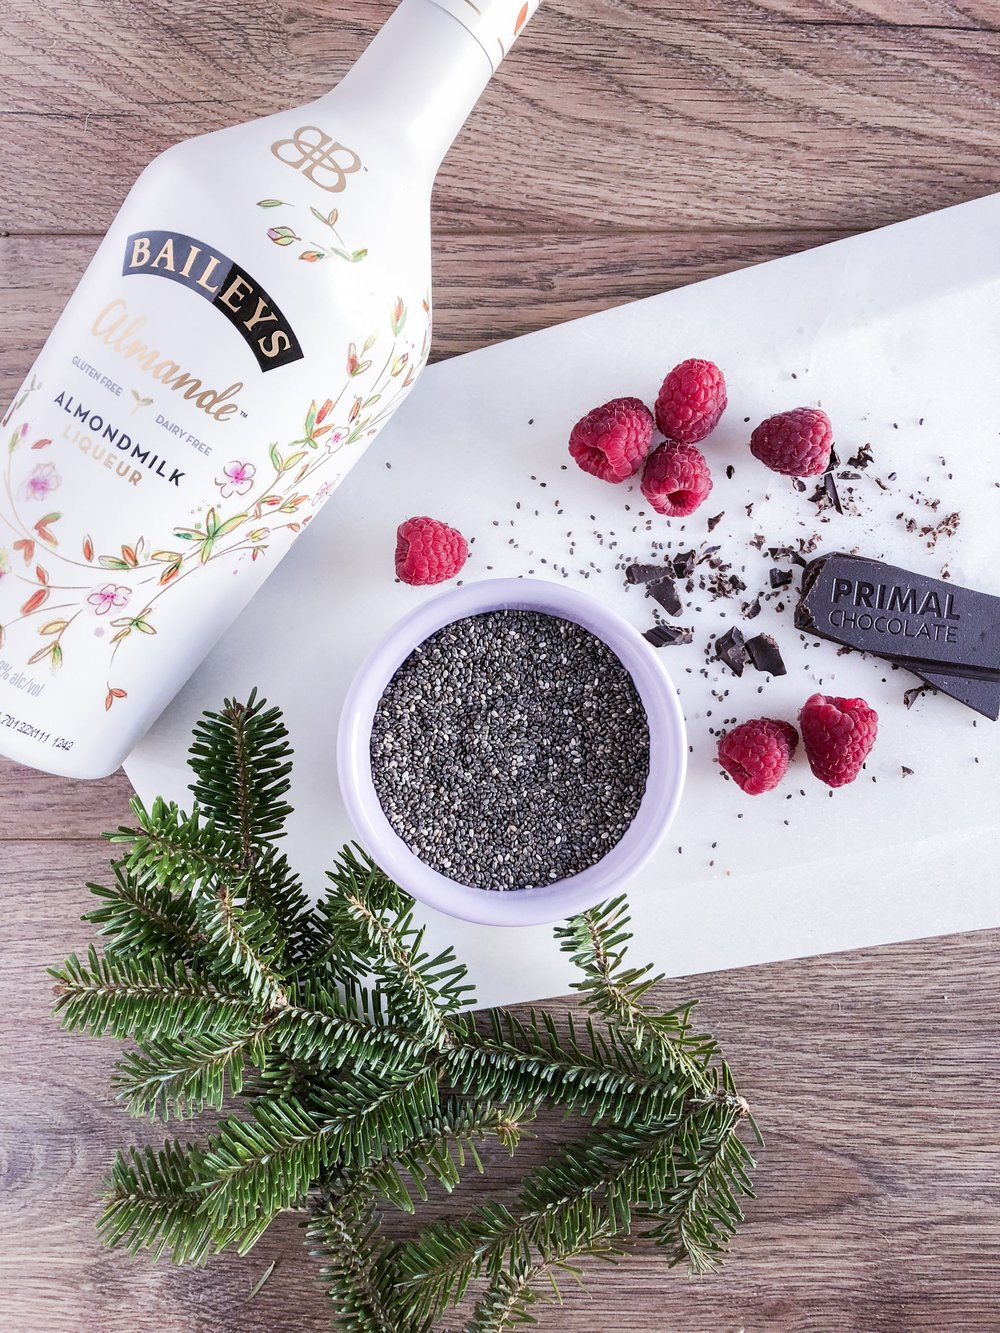 Vegan Baileys Chia Seed Pudding - Enjoy the holidays with this rich and creamy plant-based dessert made with chia seeds for an added health kick! These little seeds are packed with magic such as omega-3, antioxidants, fiber, and protein. They help support your digestive and heart health, boost your metabolism, and help your skin glow. Such power in such a tiny seed! #vegan #dessert #christmas #healthydessert #chocolate #chiaseedpudding #holidaytreat #glutenfreedessert #oilfree #baileys